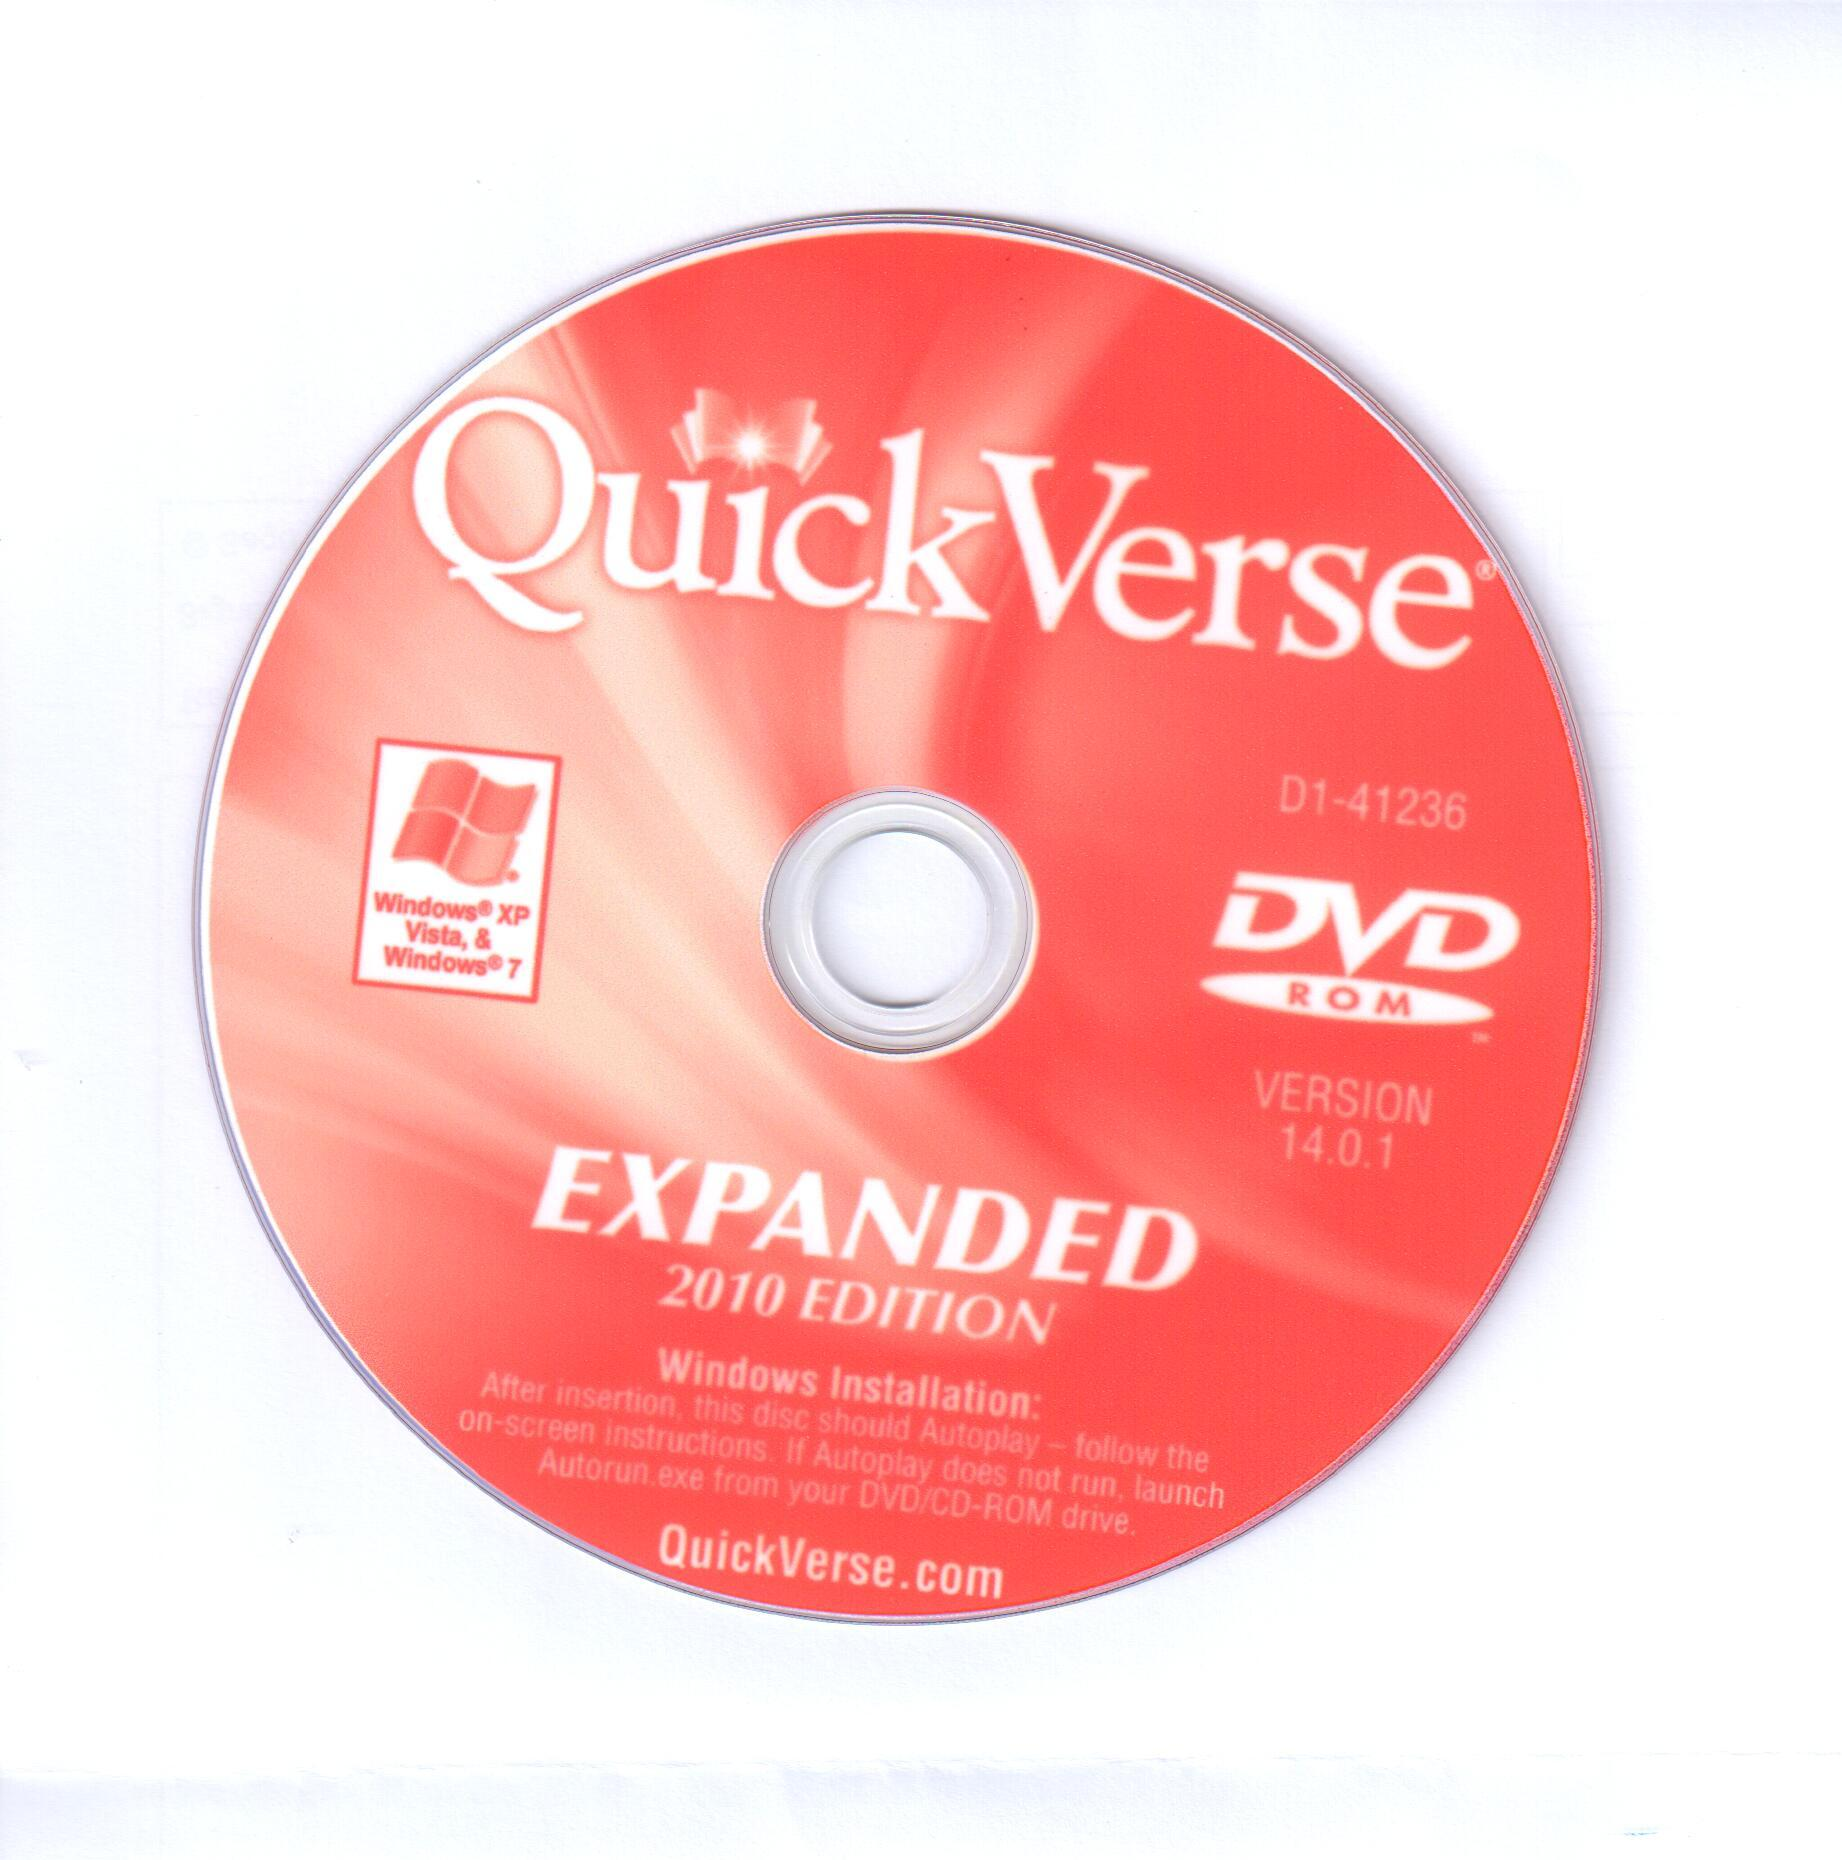 QuickVerse 2010 Expanded Edition